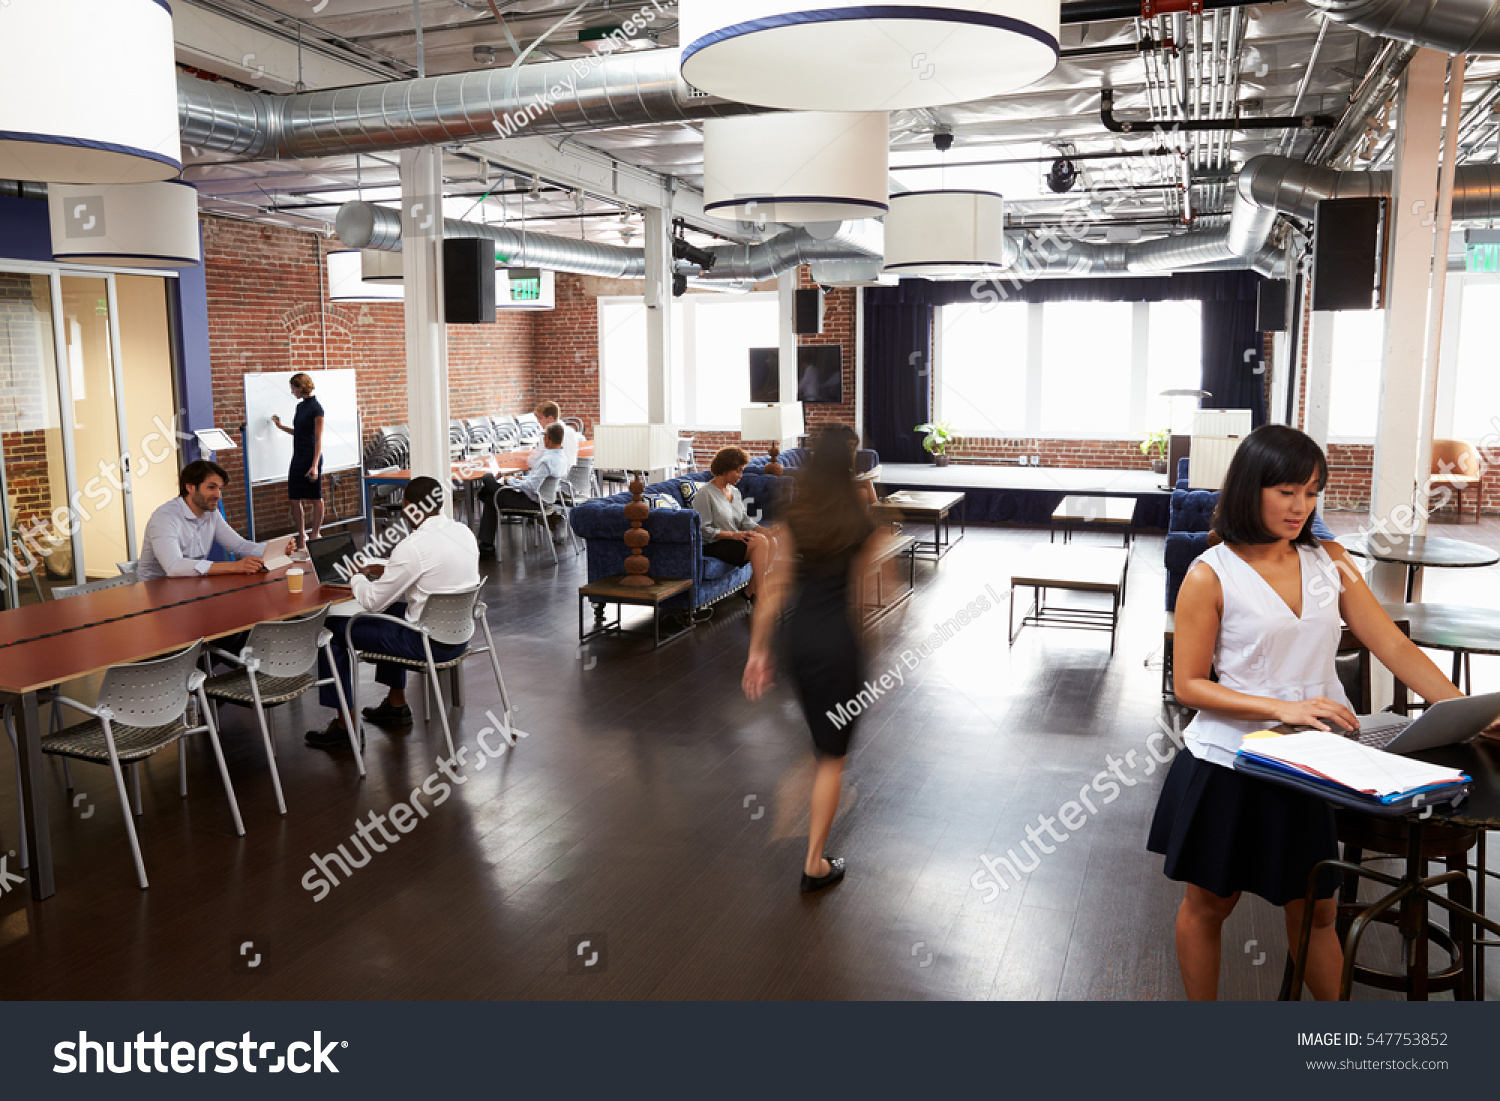 wide angle view busy design office. interior of busy design office with staff wide angle view